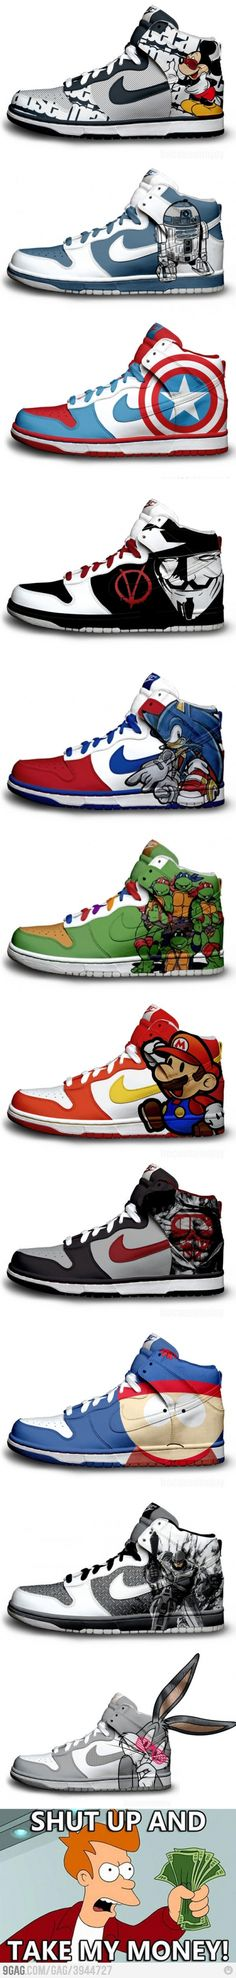 Awsome Nike Sneakers